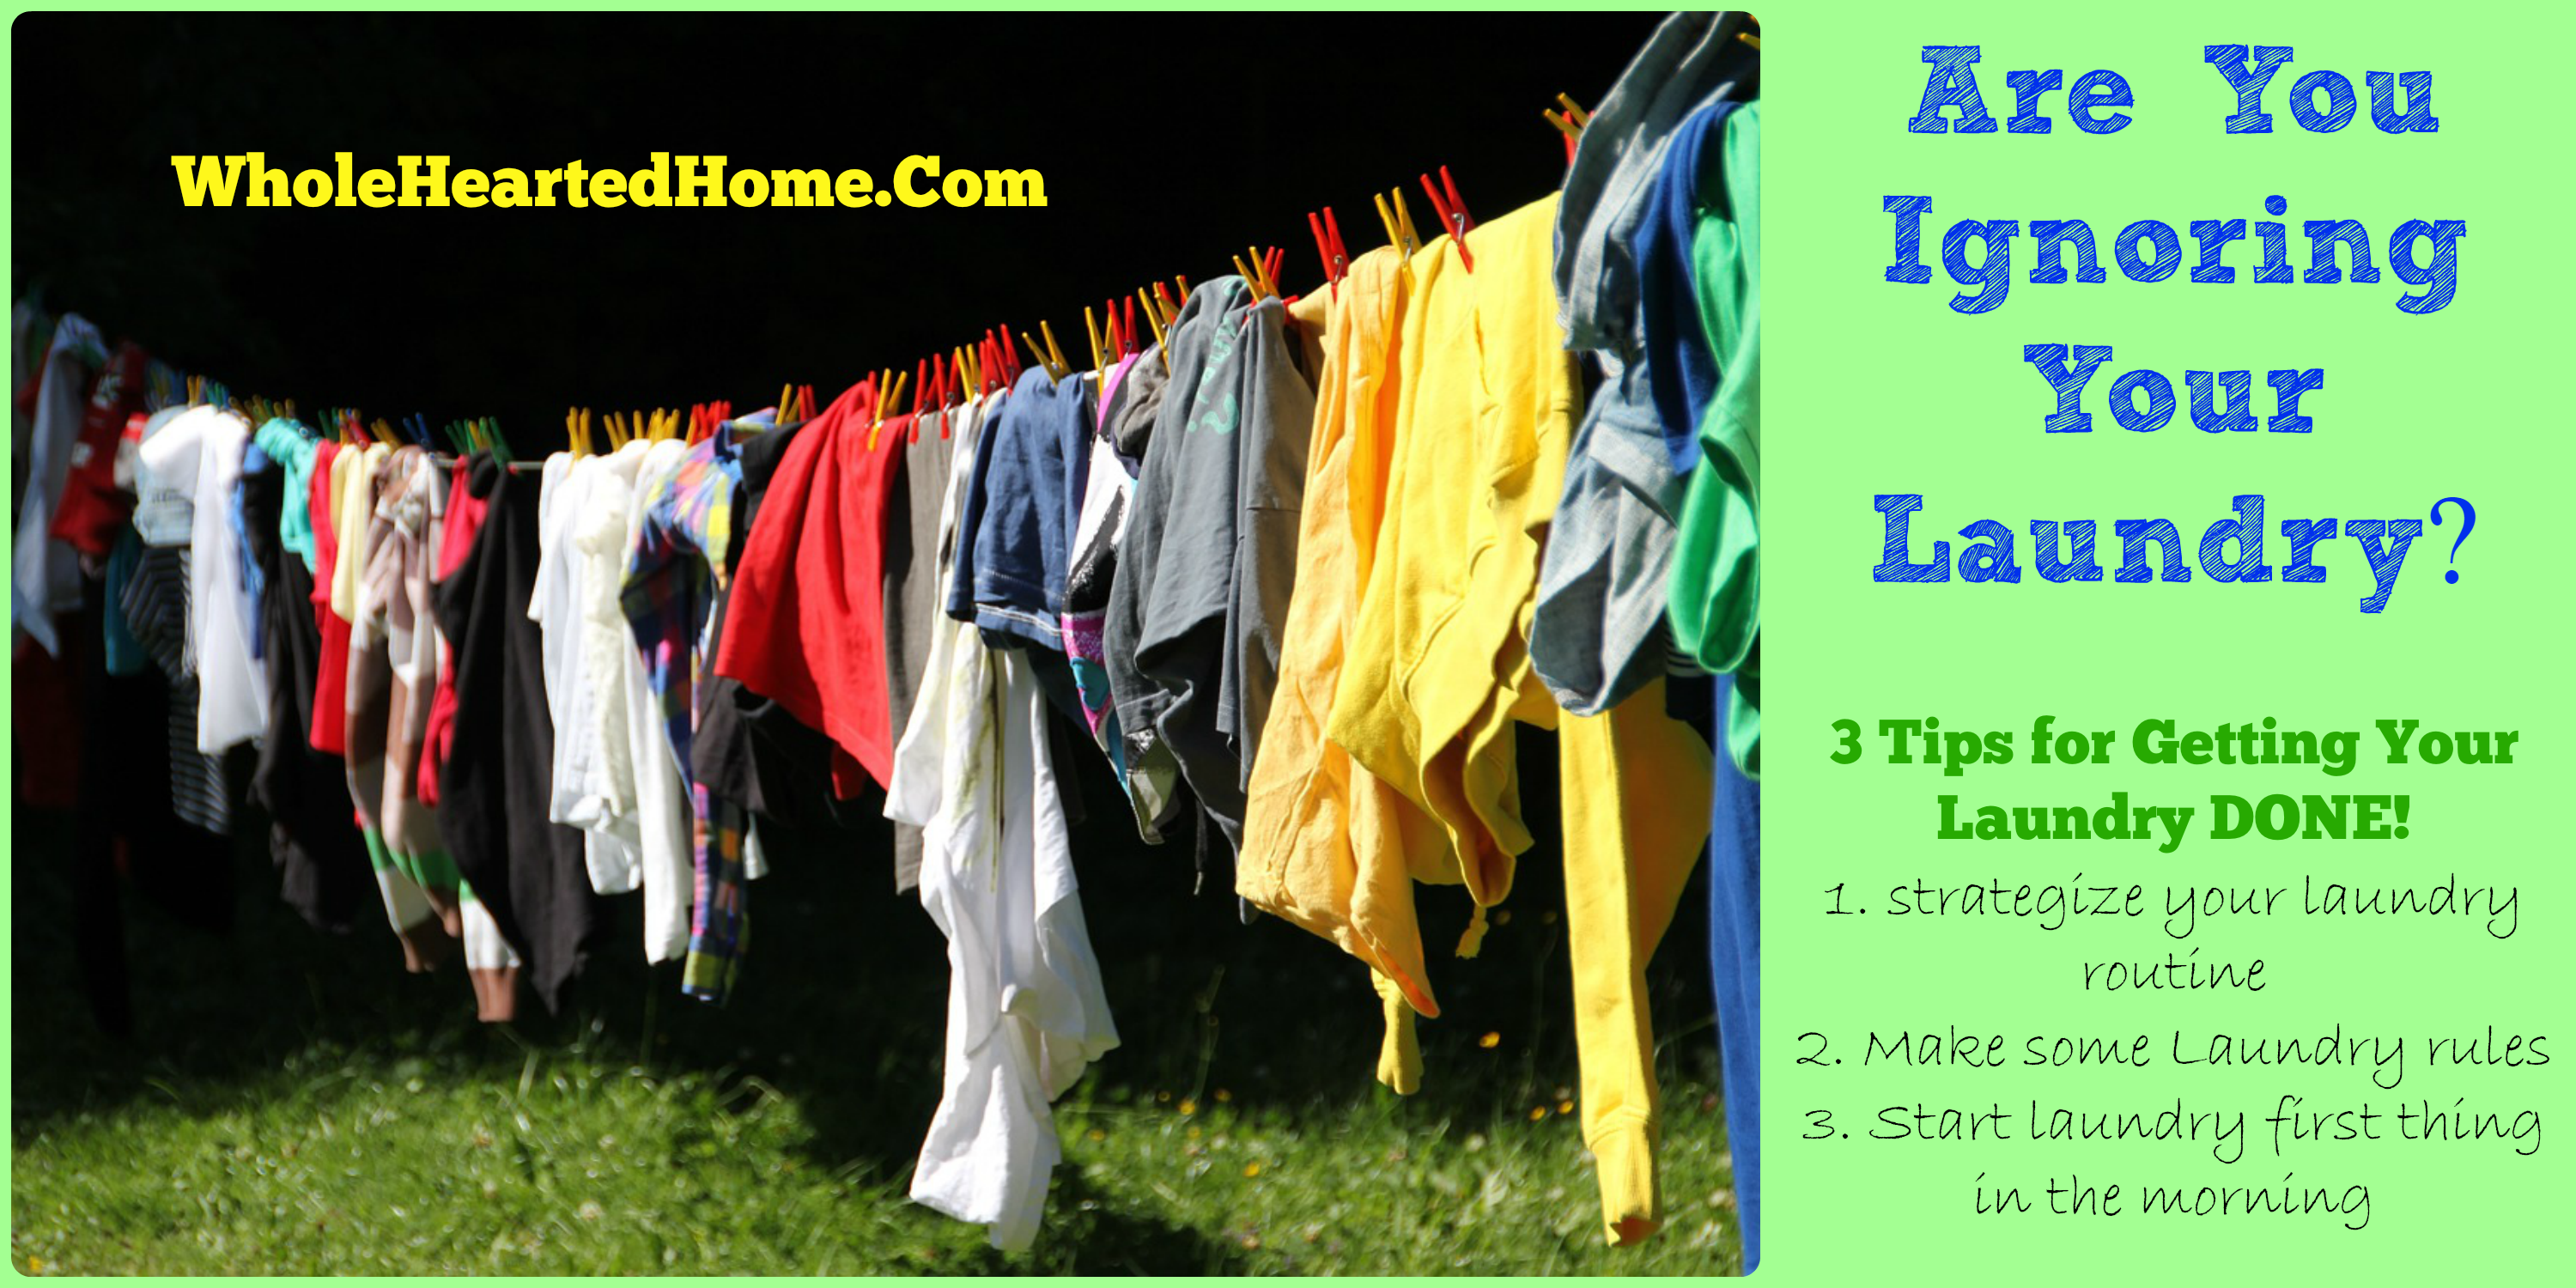 Are You Ignoring Your Laundry? 3 Tips + WholeHearted Wednesday #130